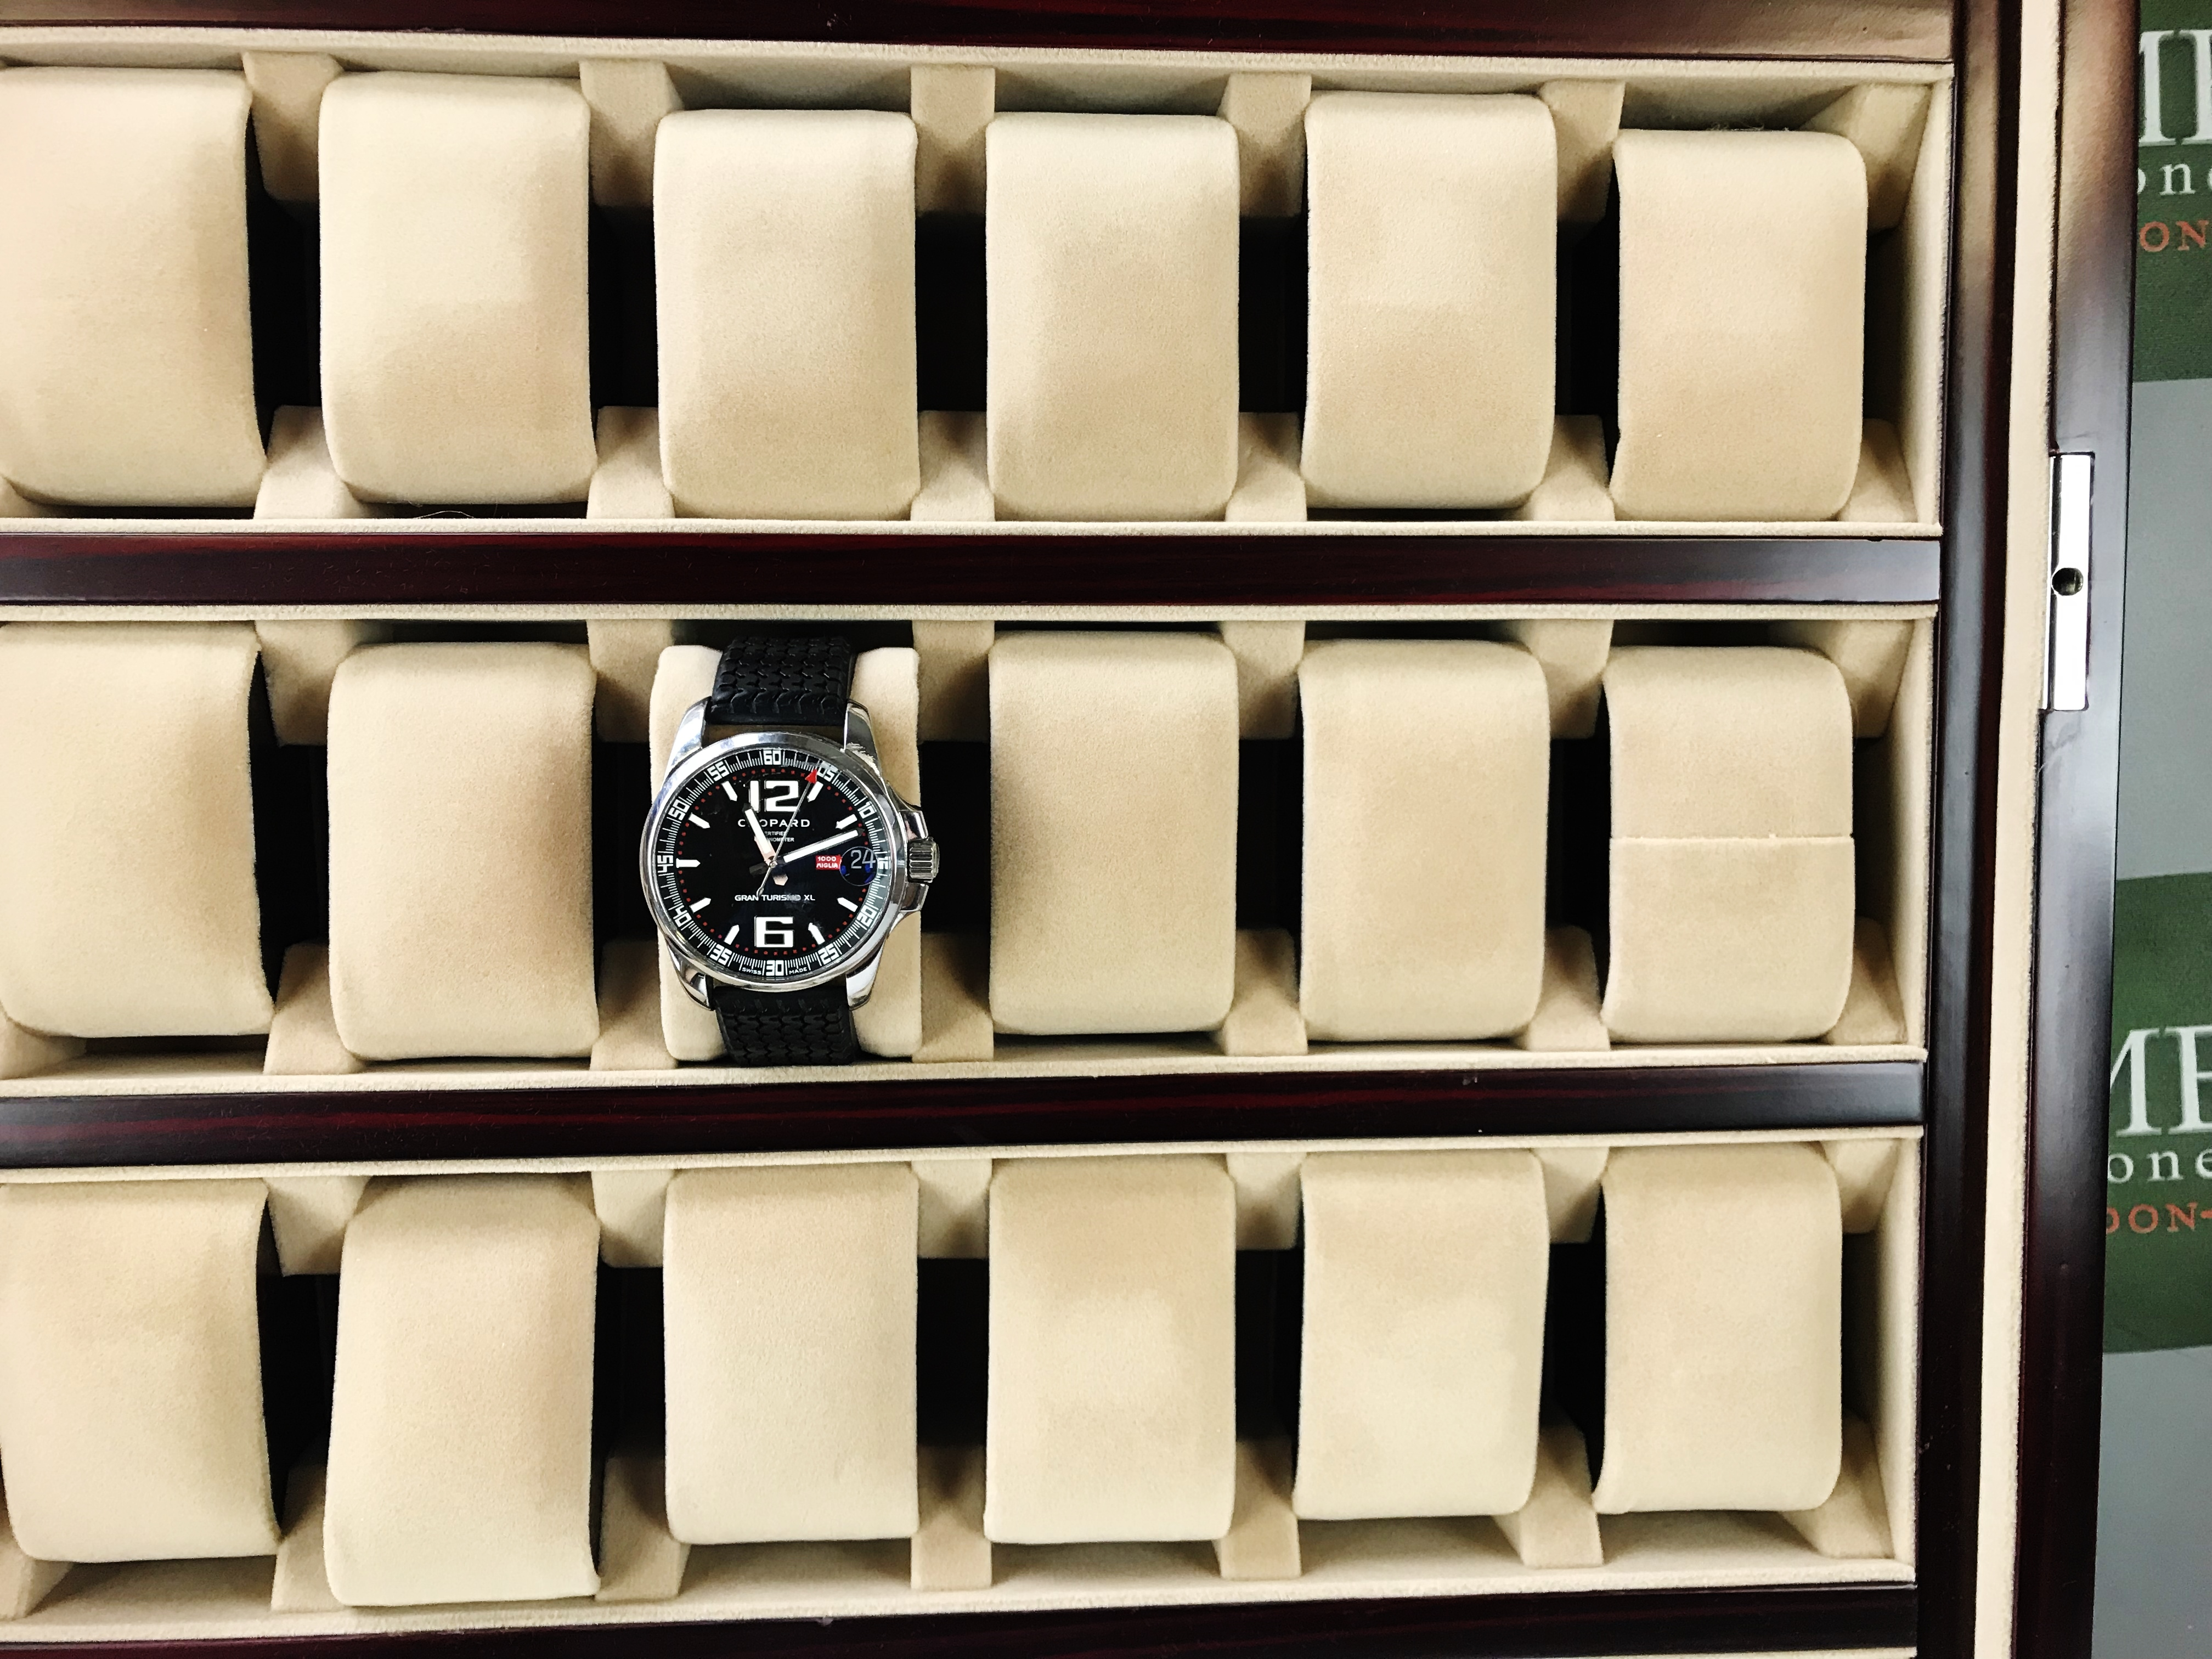 Lot 44 - Watch Display For Up To 36 Watches